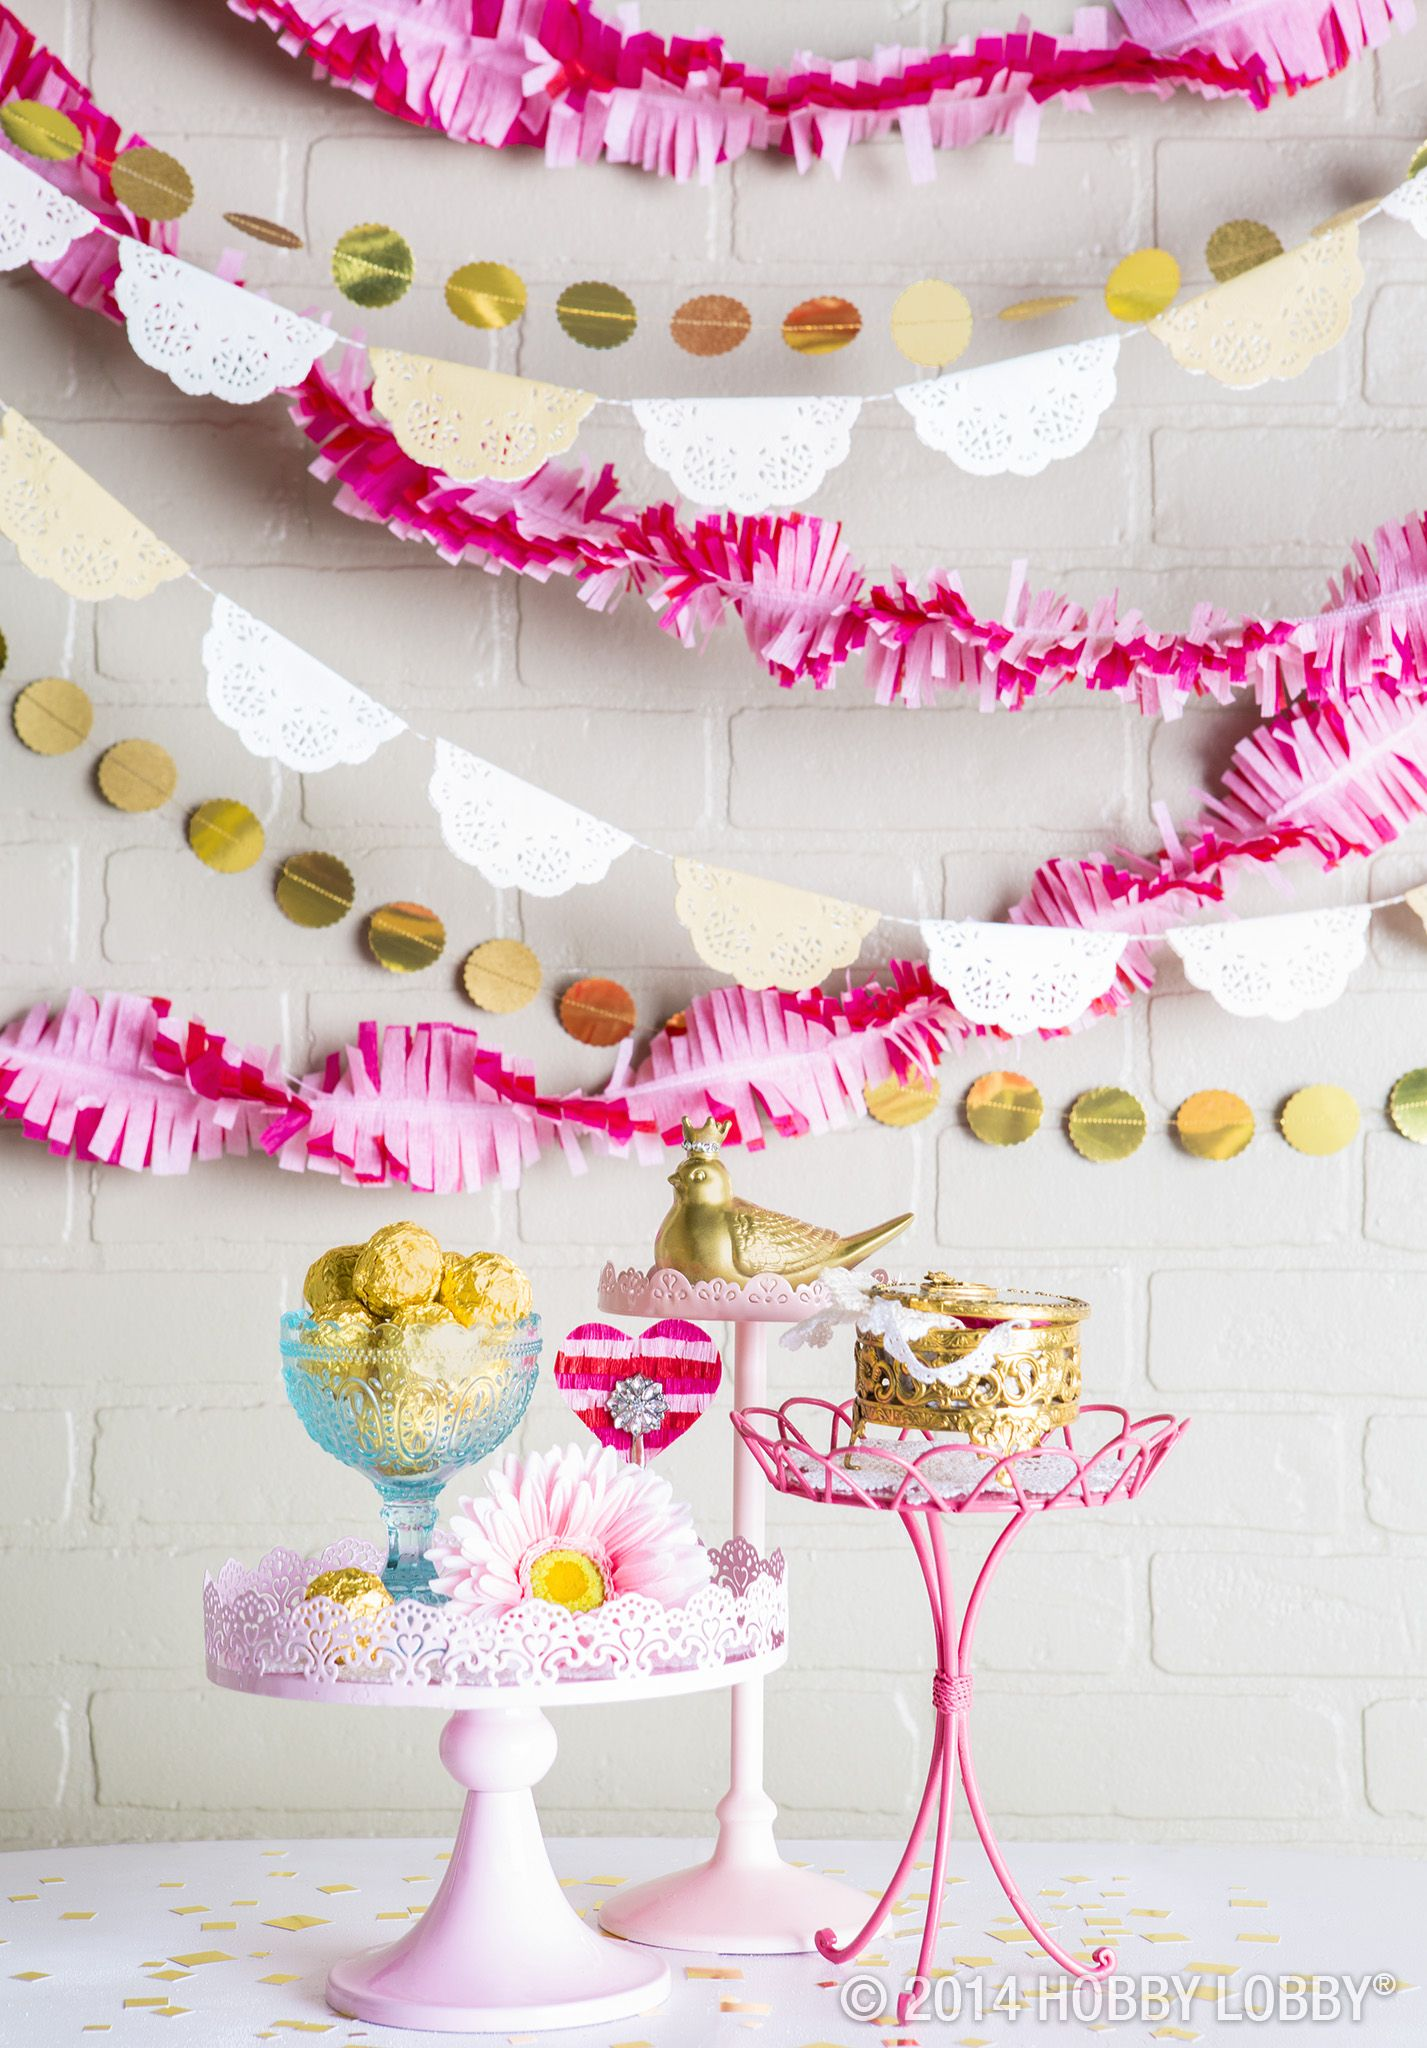 Set The Scene For The Mom To Be With Simple Party Decor In Shades